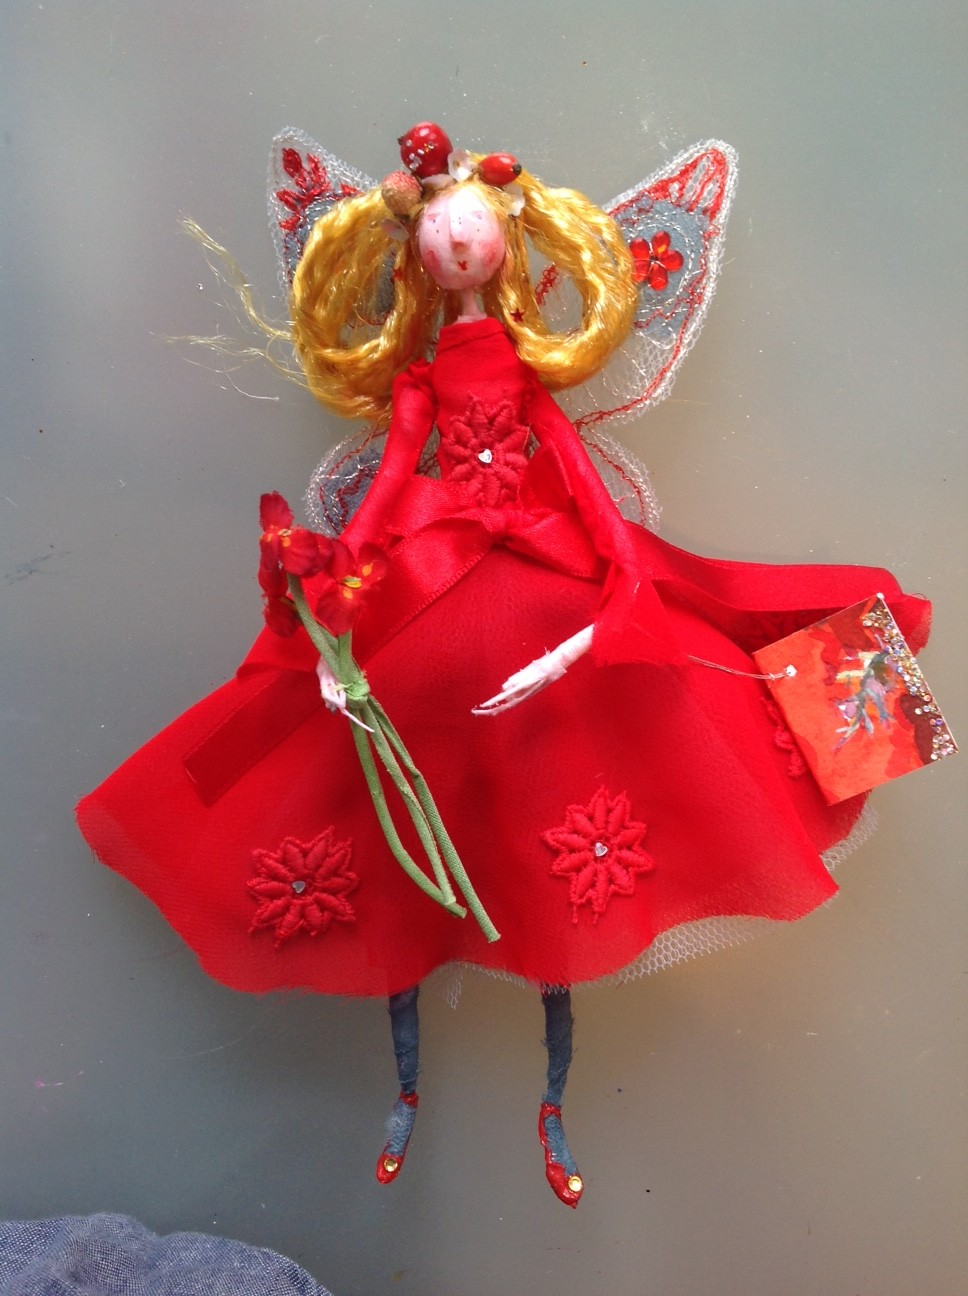 RUBY RED, a 20cm fairy with a painted clay head. She is wearing a bright red very floaty chiffon dress embellished with cotton flowers with iridescent hearts. She has stiffly embroidered wings , has berries in her hair and is holding vintage fabric flowers. She comes in an organza bag with dried petals and her hand painted name tag. £40 plus £3 postage.